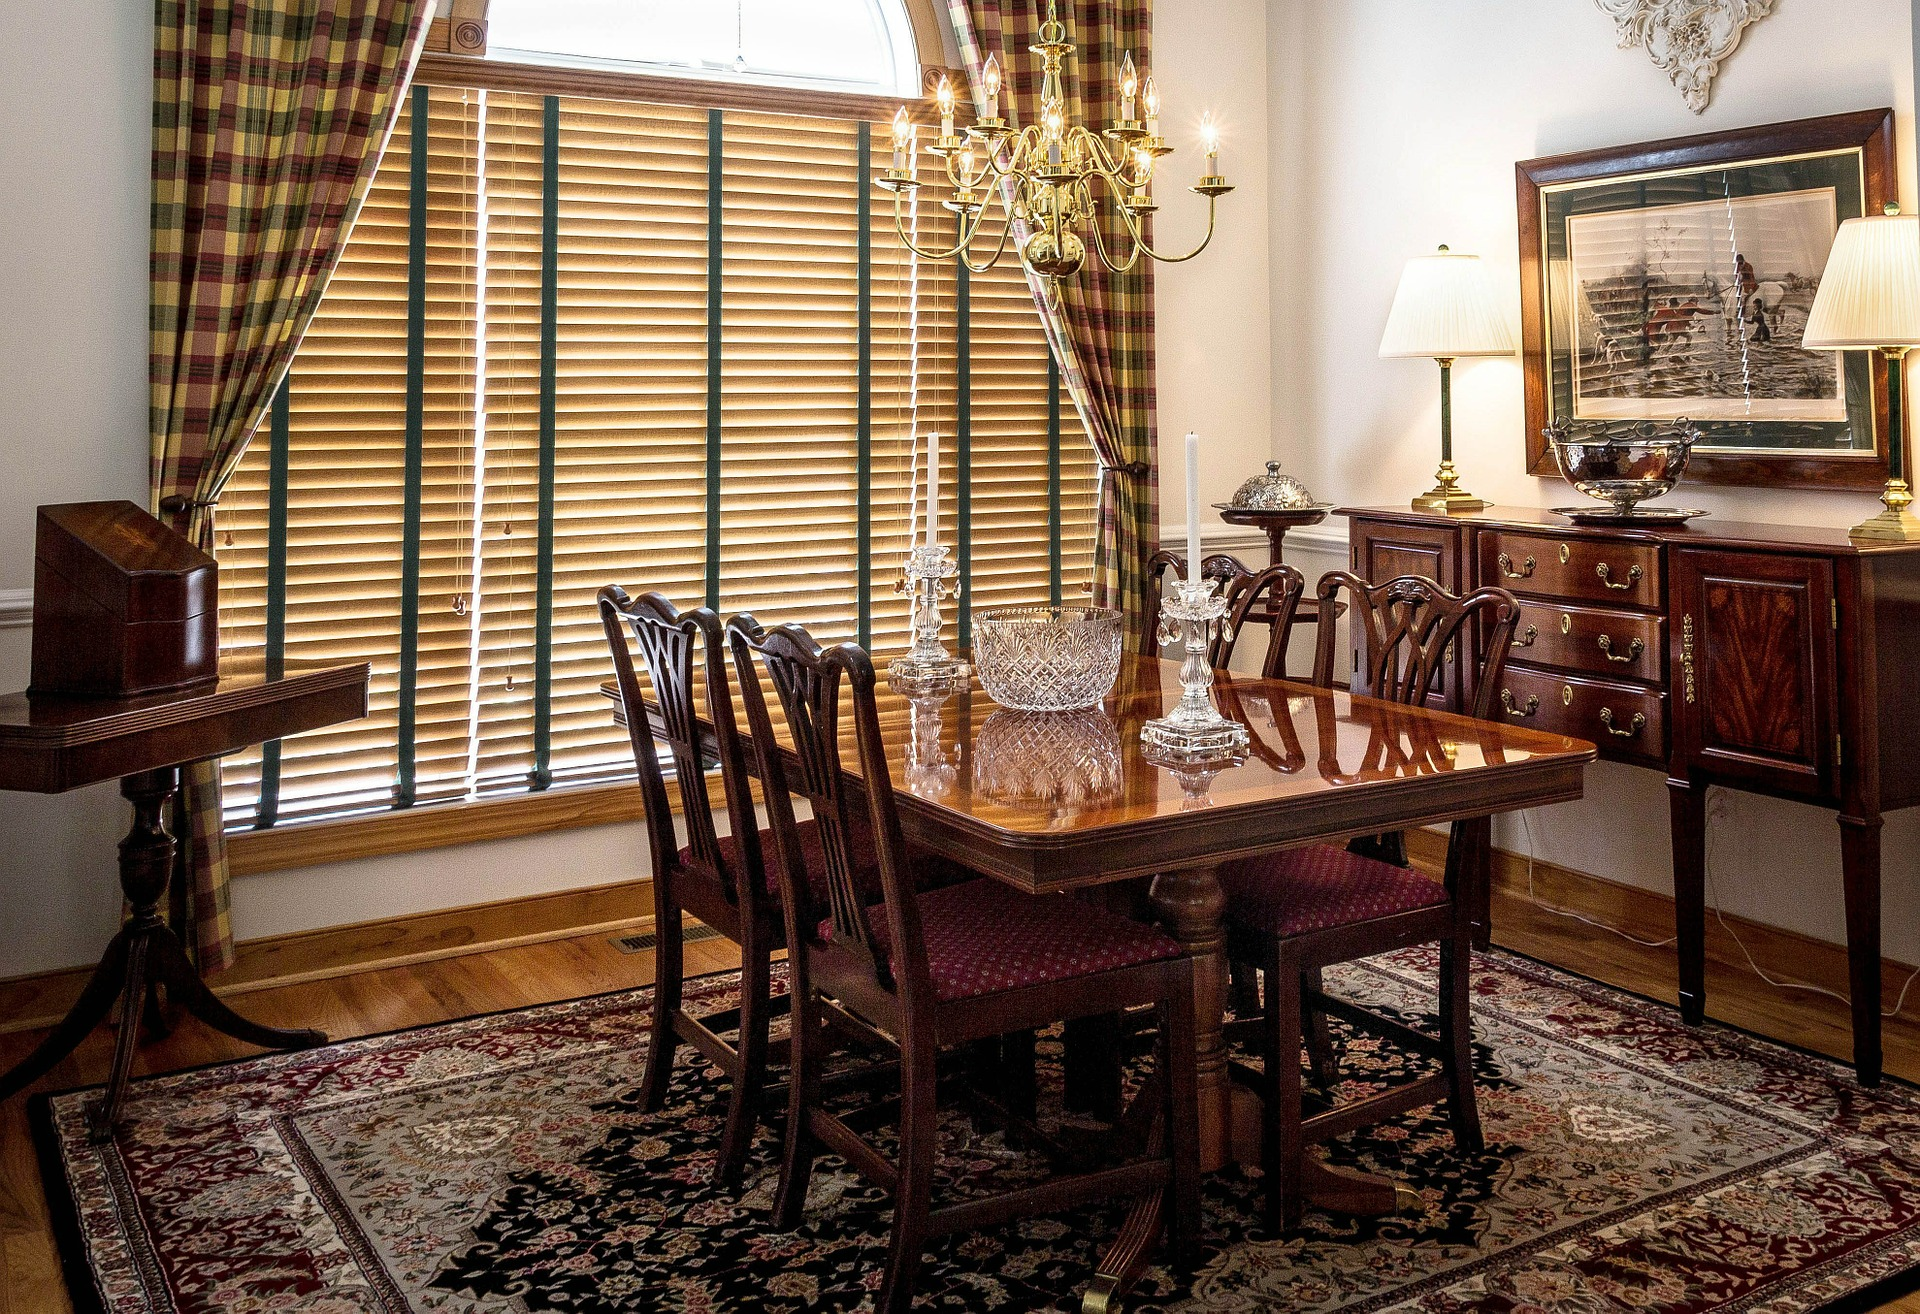 Dining room with carpet bought from a rug store